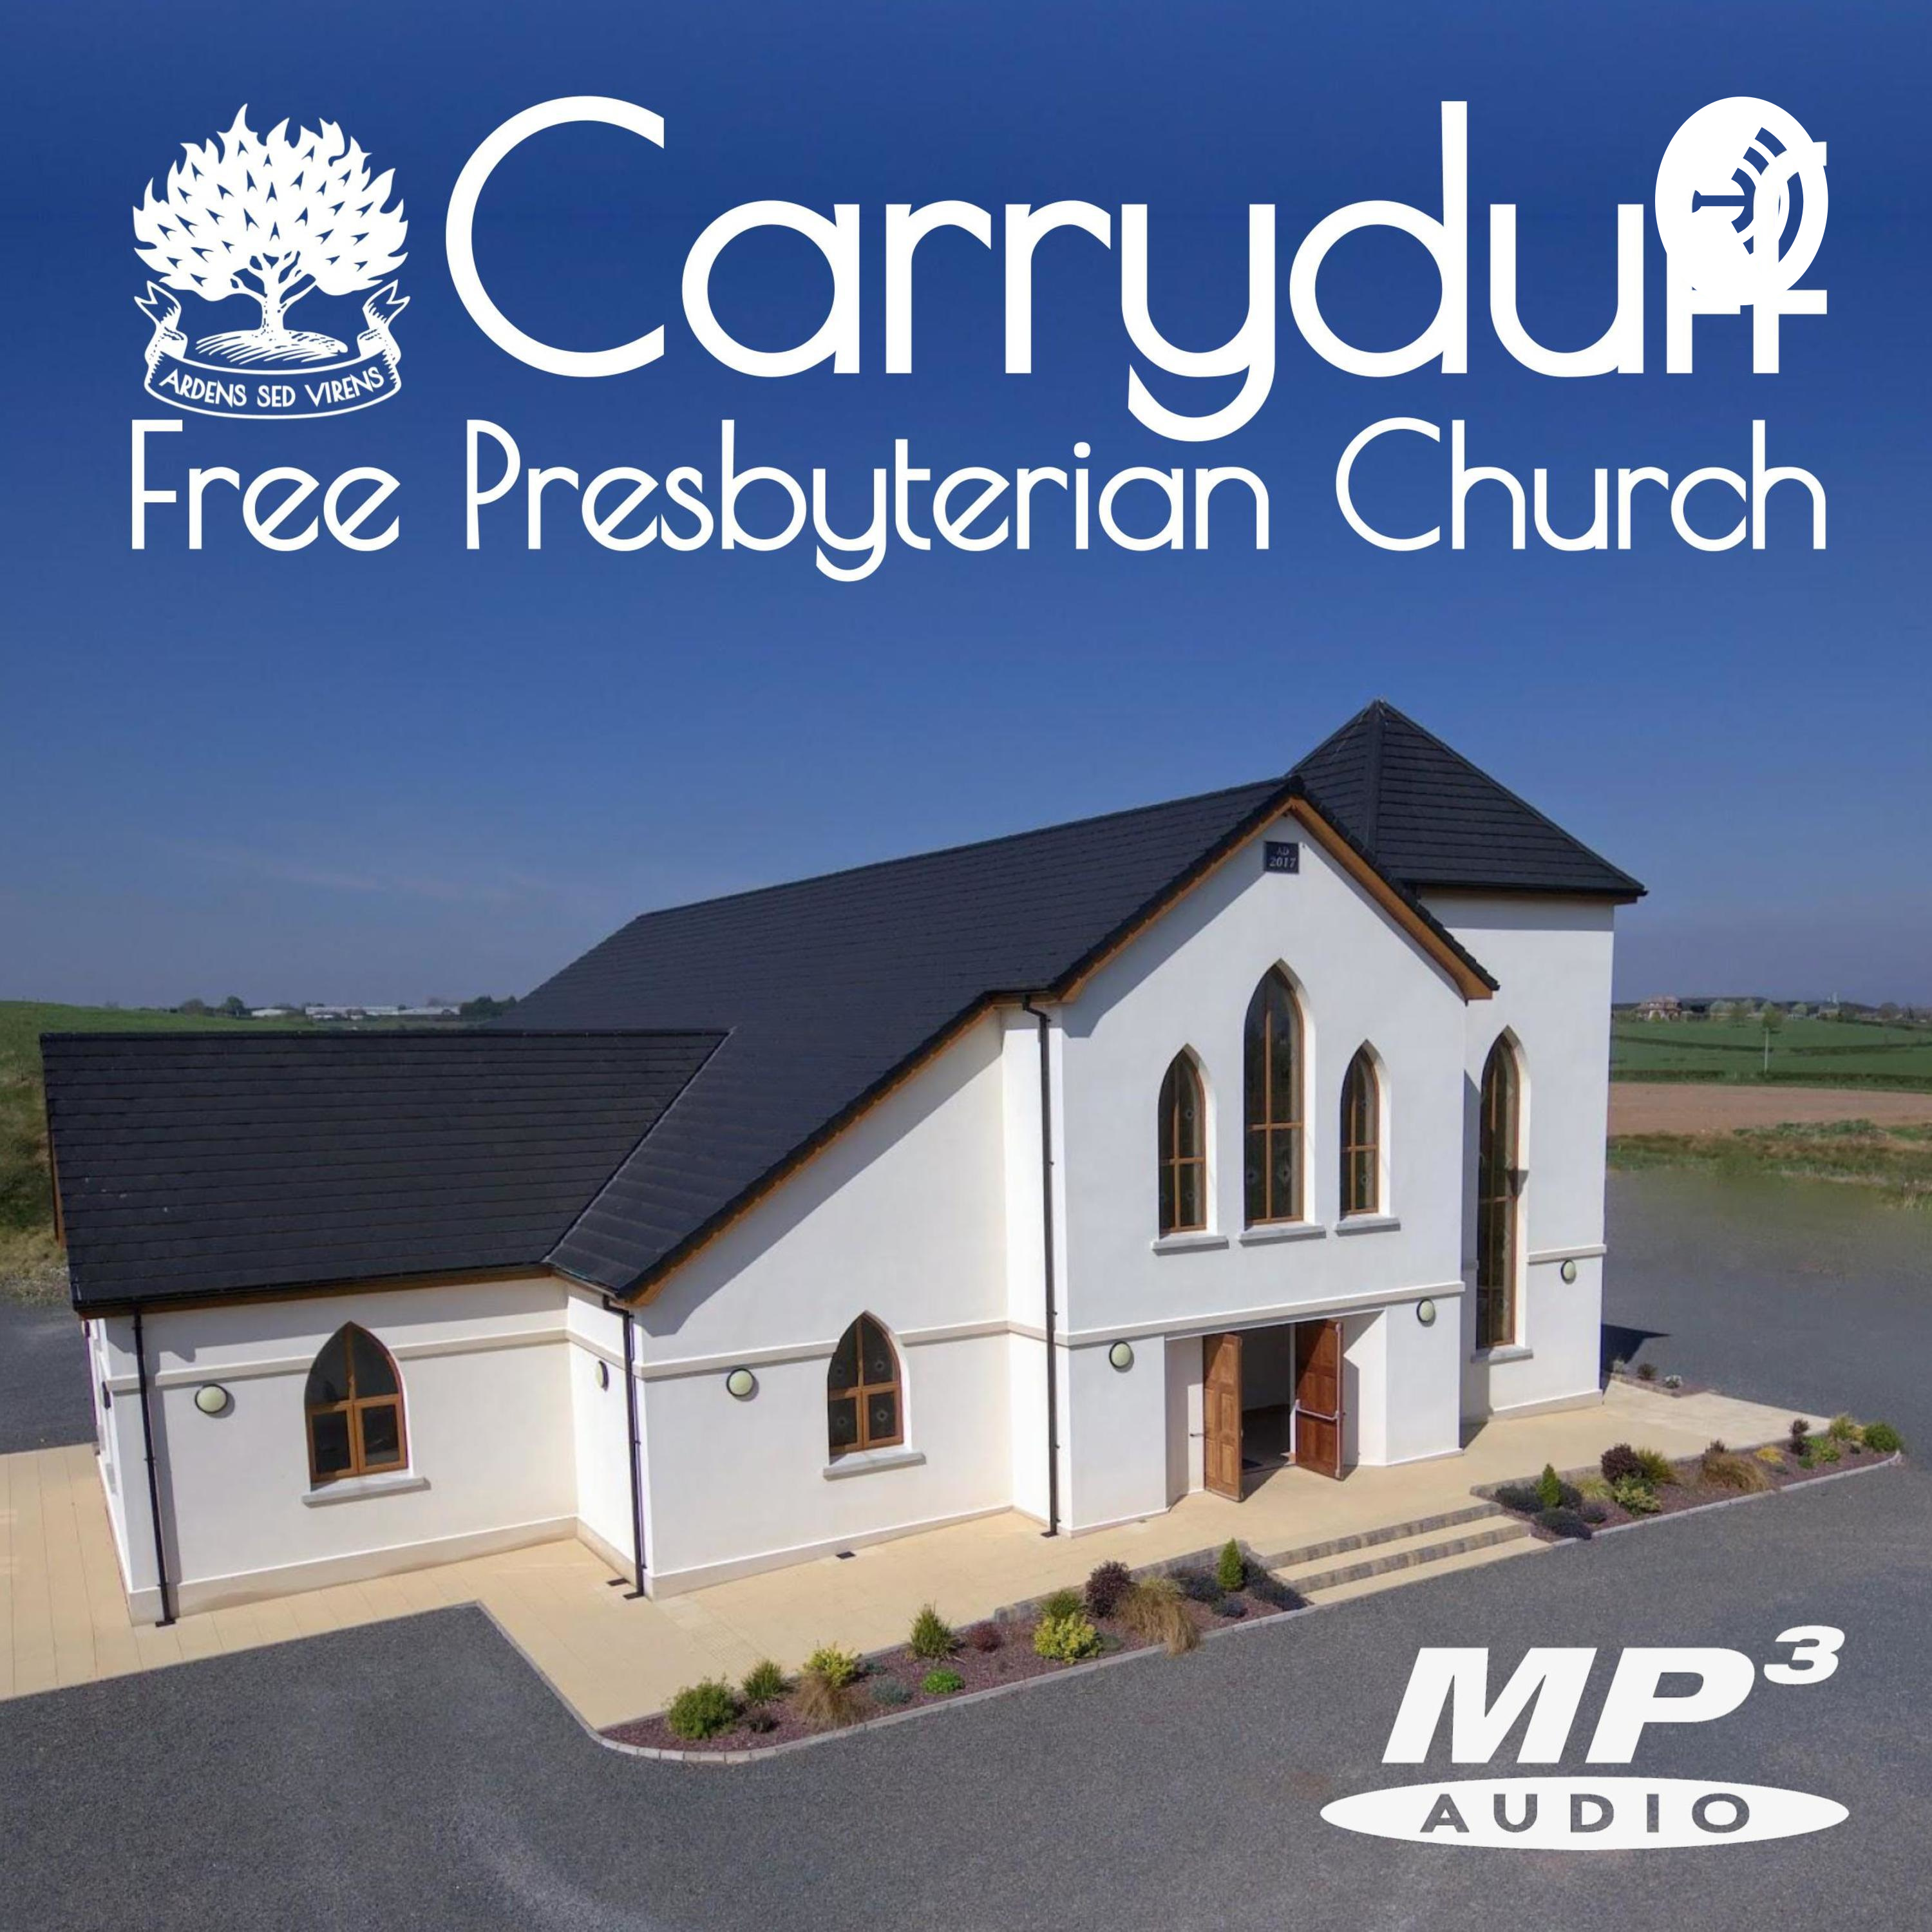 Carryduff Free Presbyterian Church